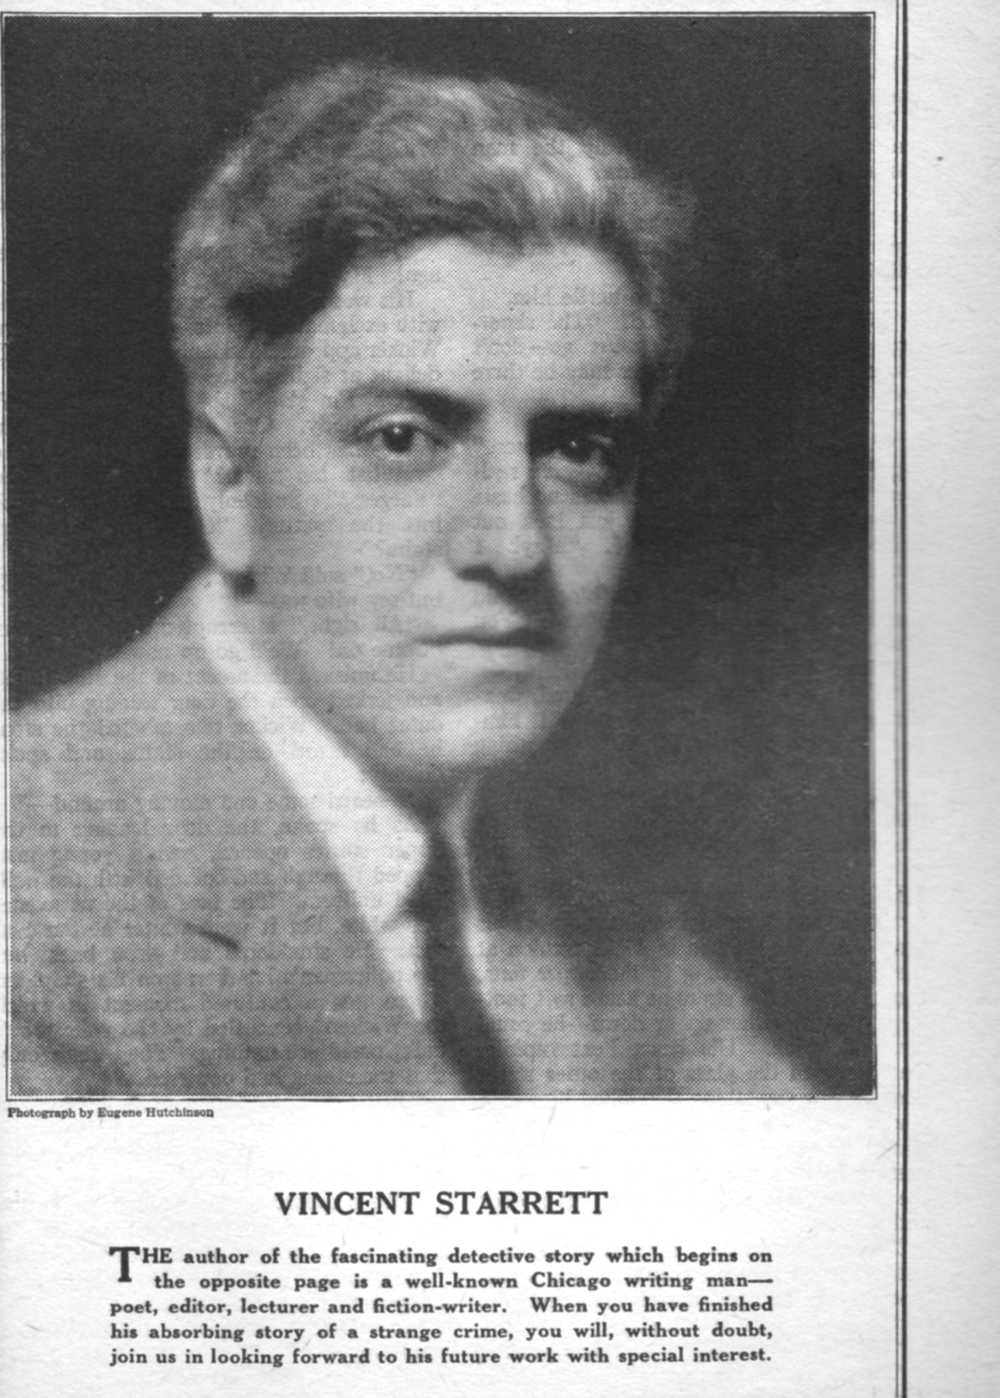 "From the January 1926 issue of The Blue Book Magazine, a pulp that ran Starrett's short story ""The Zulu Assegai."" The photo was taken by Eugene Hutchinson, who also shot the profile image of Starrett that was used for Oppenheim's clothing catalog and is shown on this page. The image quality is not great, but the pulp is printed on very poor paper."